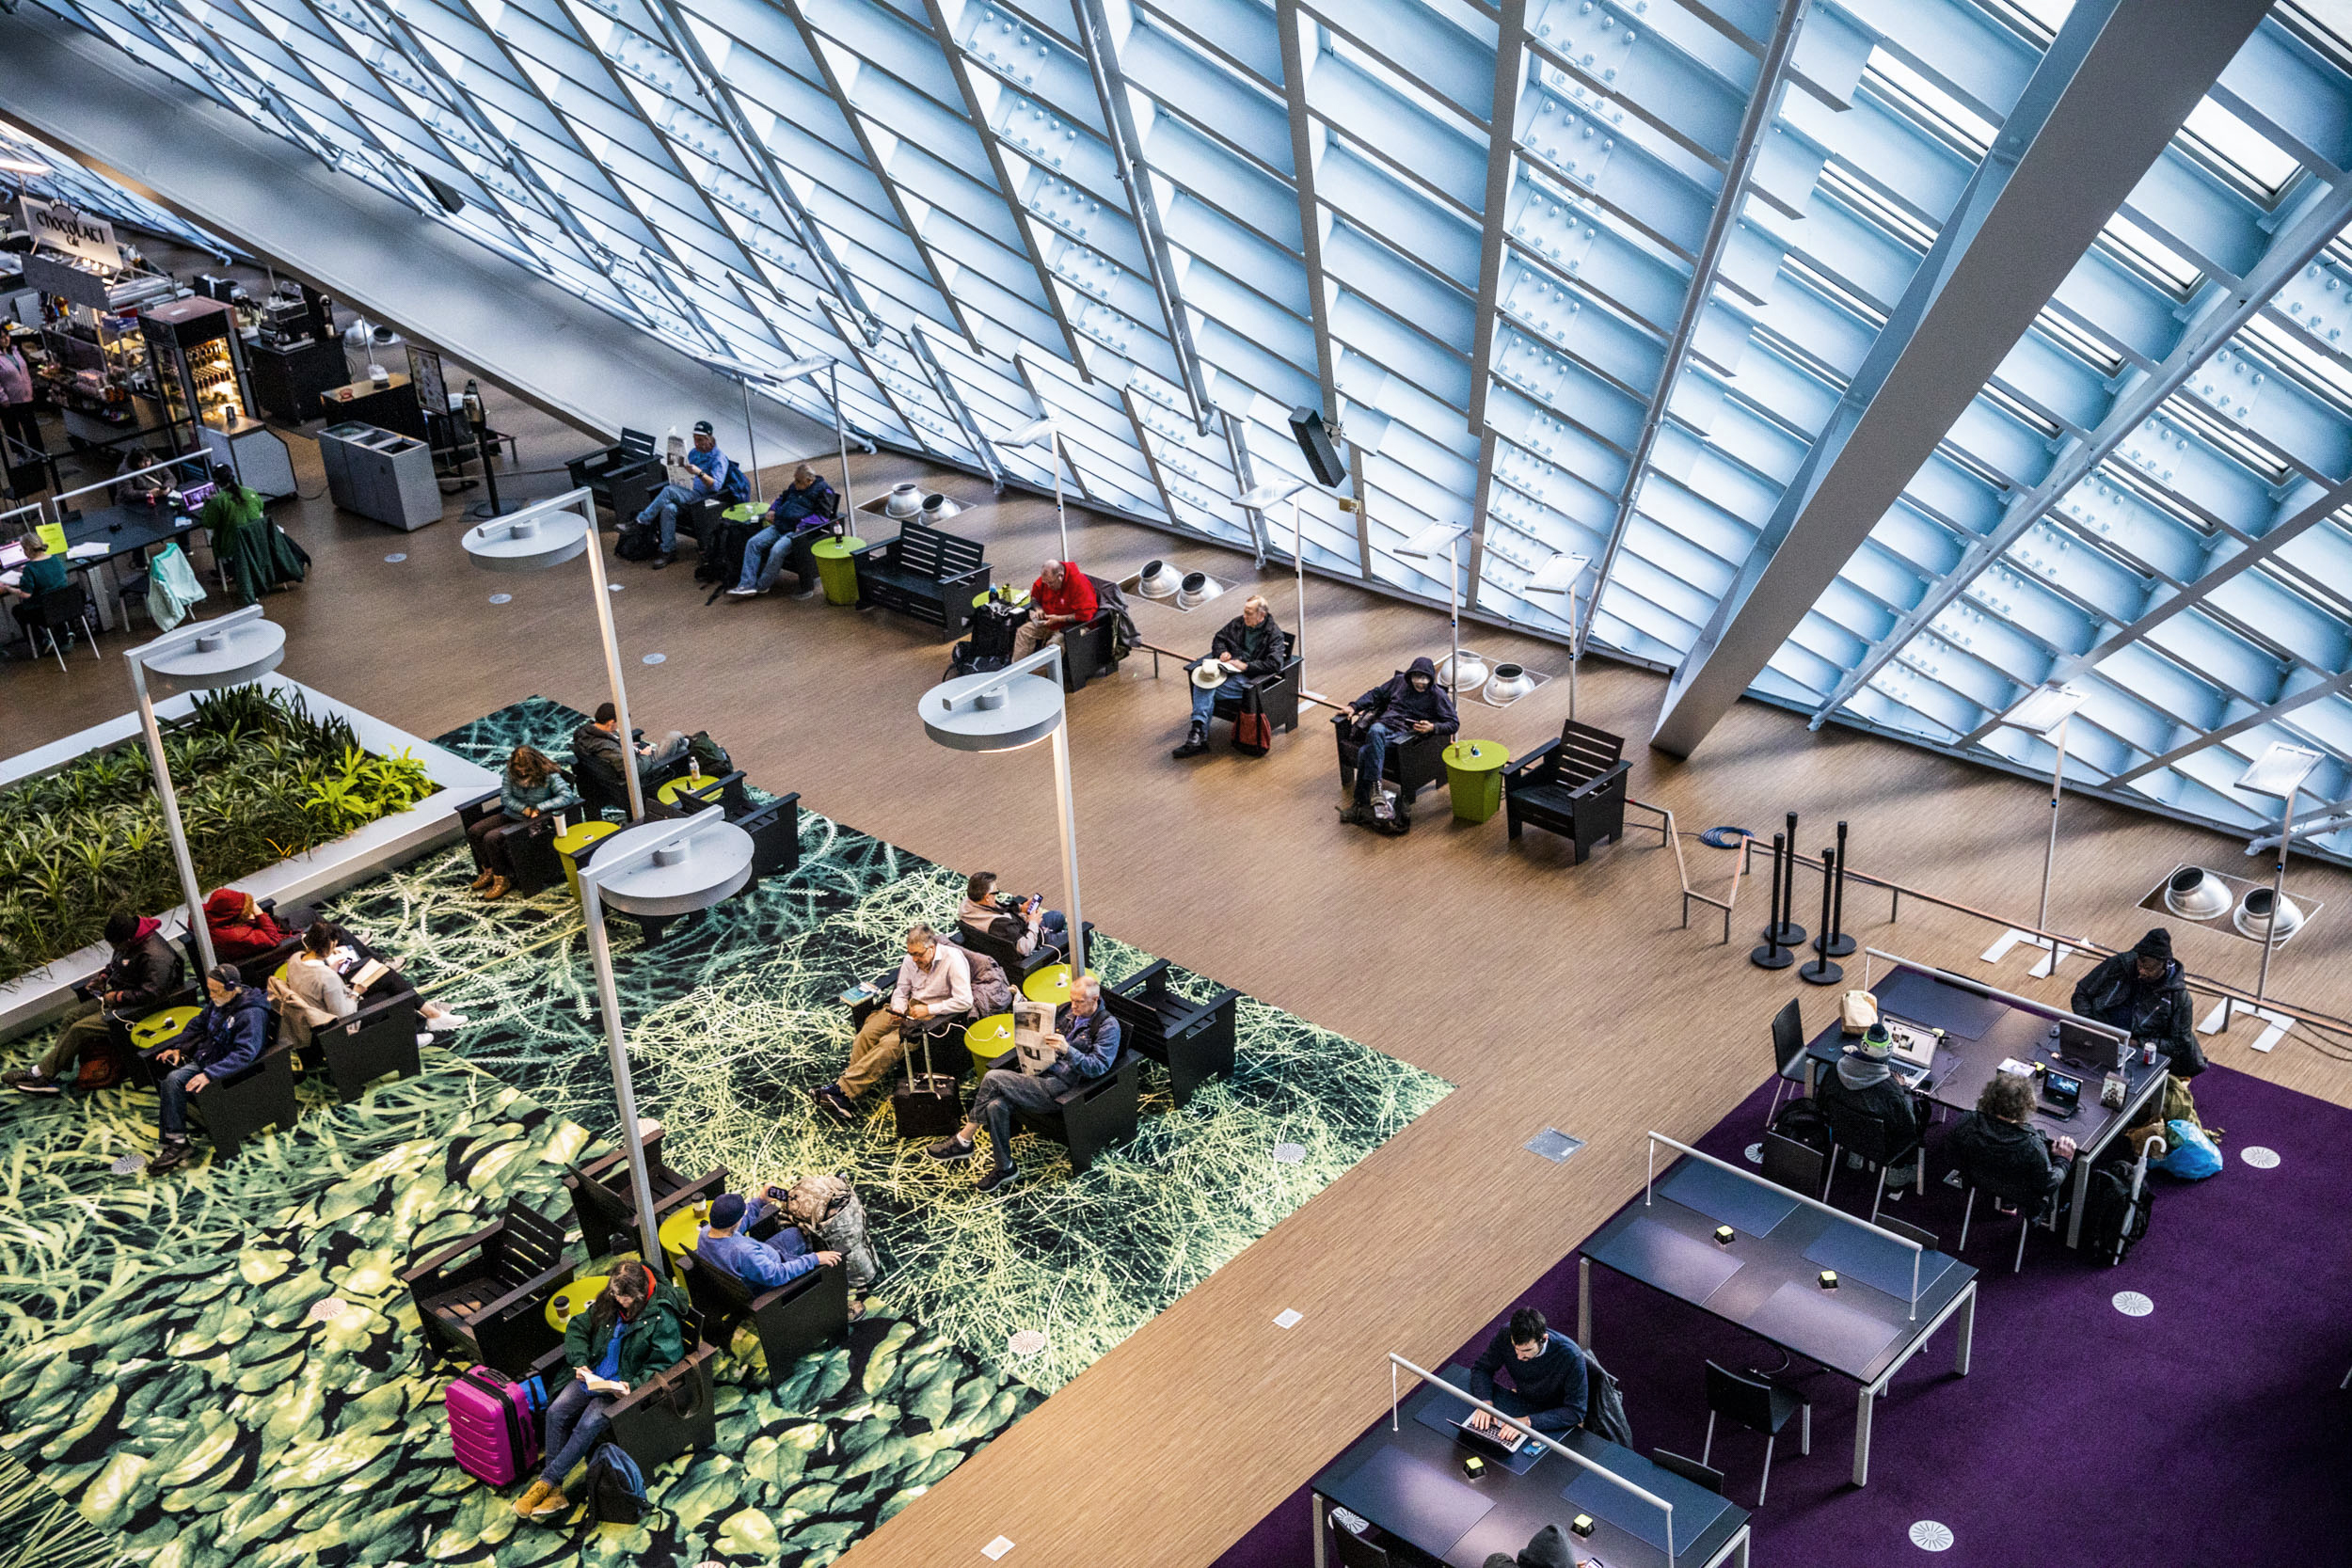 Seattle Public Library's Central Branch, designed by Rem Koolhaas